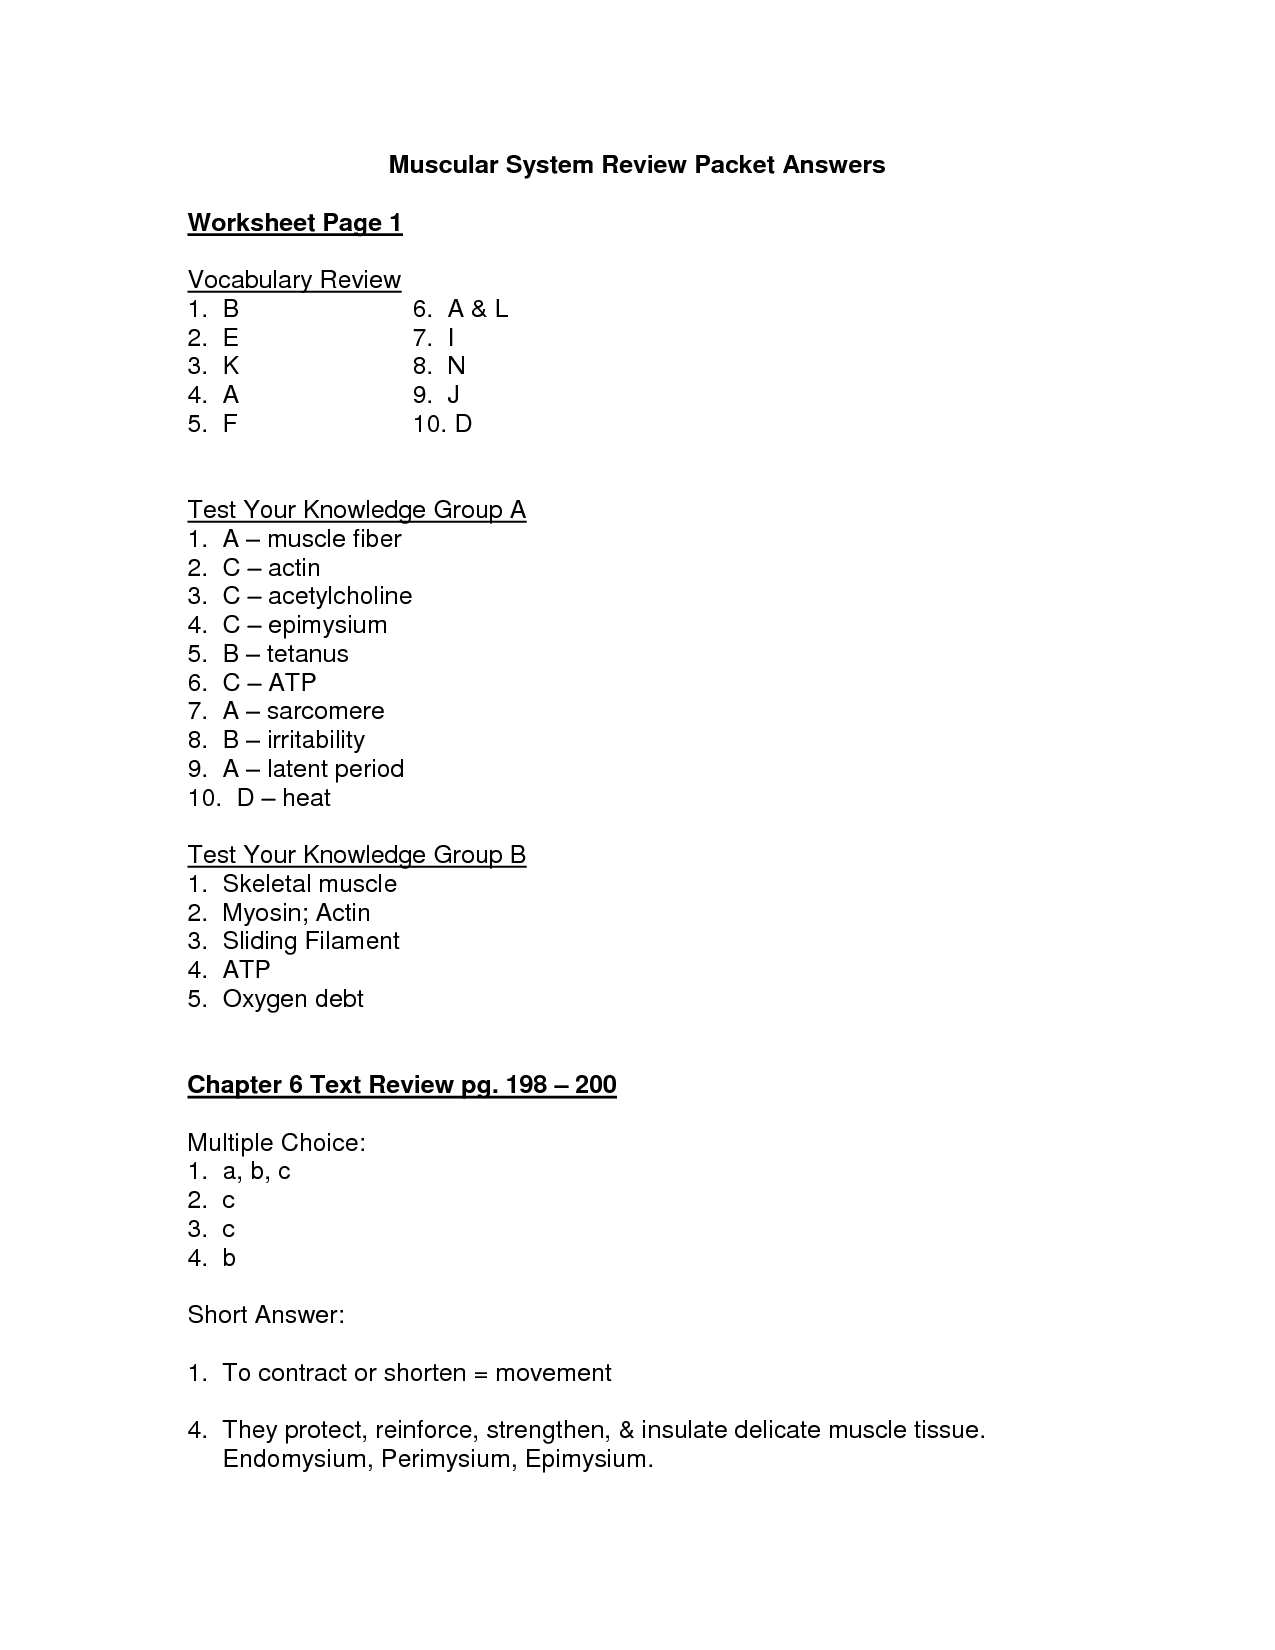 Muscle Movements Worksheet